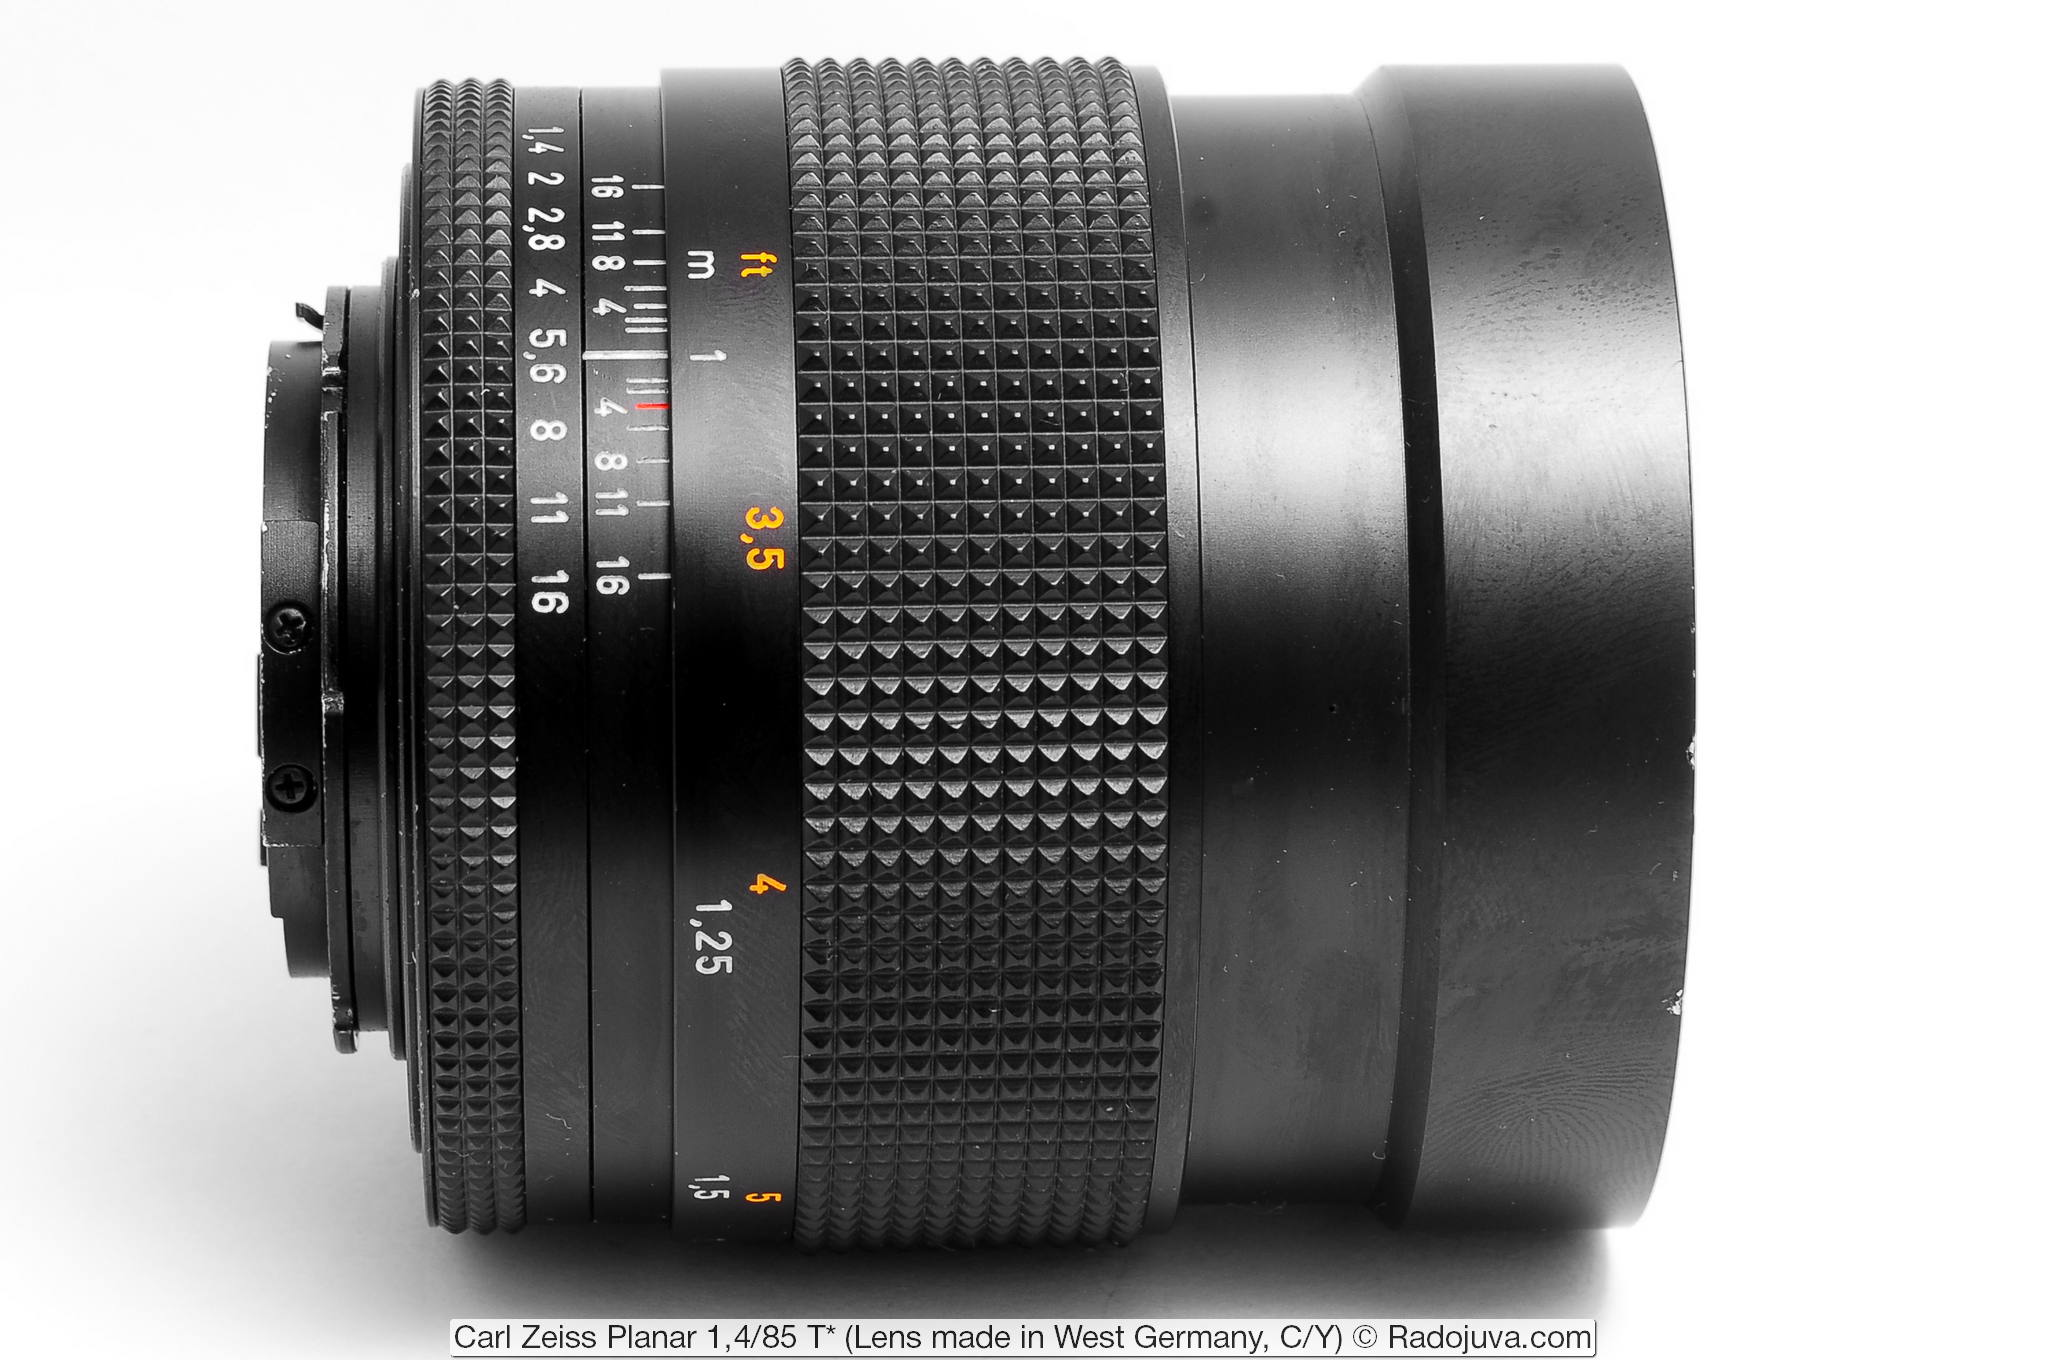 Carl Zeiss Planar 1,4/85 T* (Lens made in West Germany, C/Y)